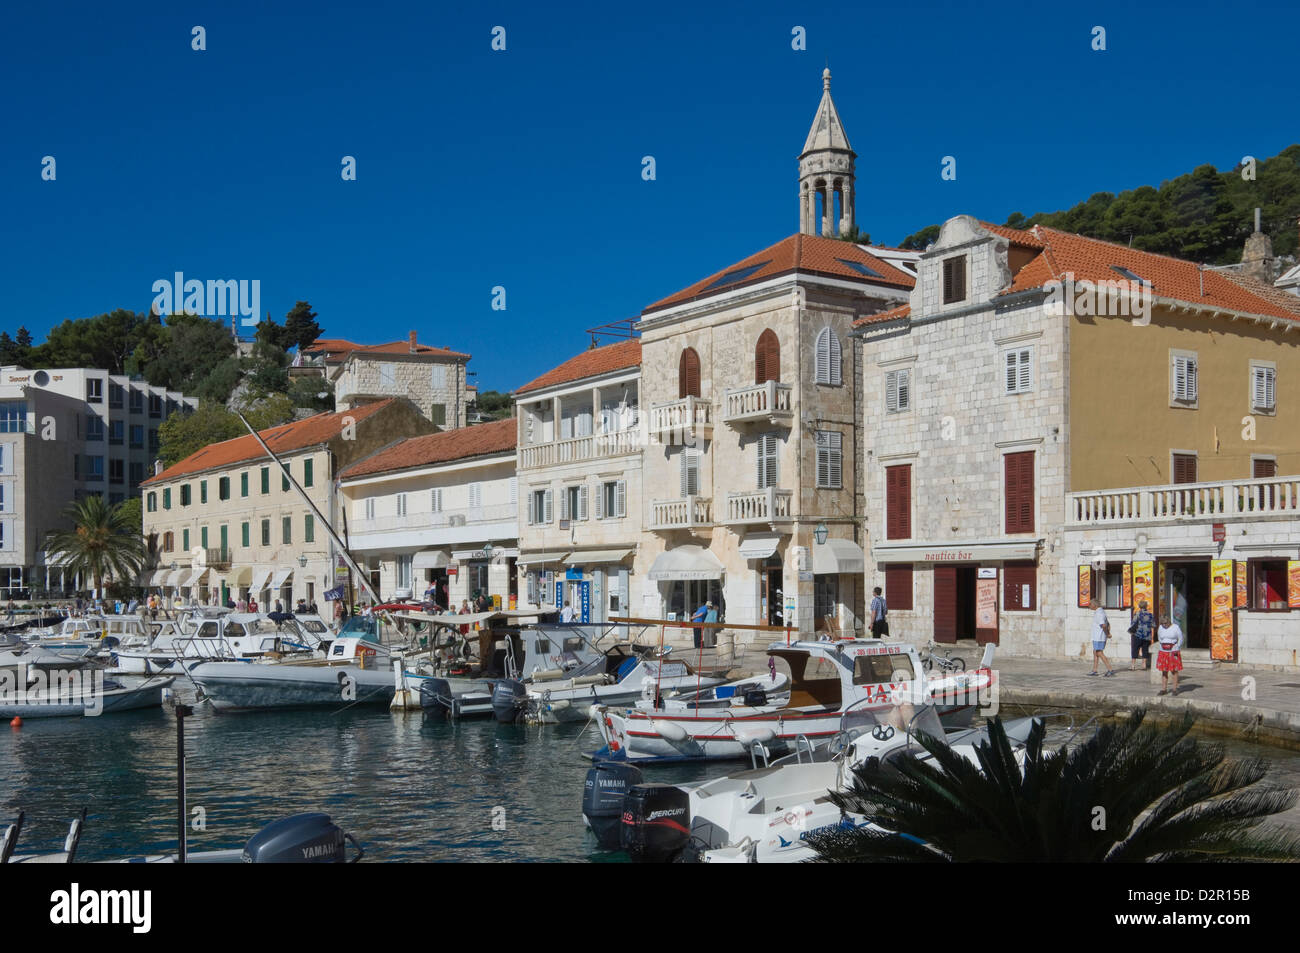 Promenade cafes by the old harbour in the medieval city of Hvar, on the island of Hvar, Dalmatia, Croatia, Europe - Stock Image